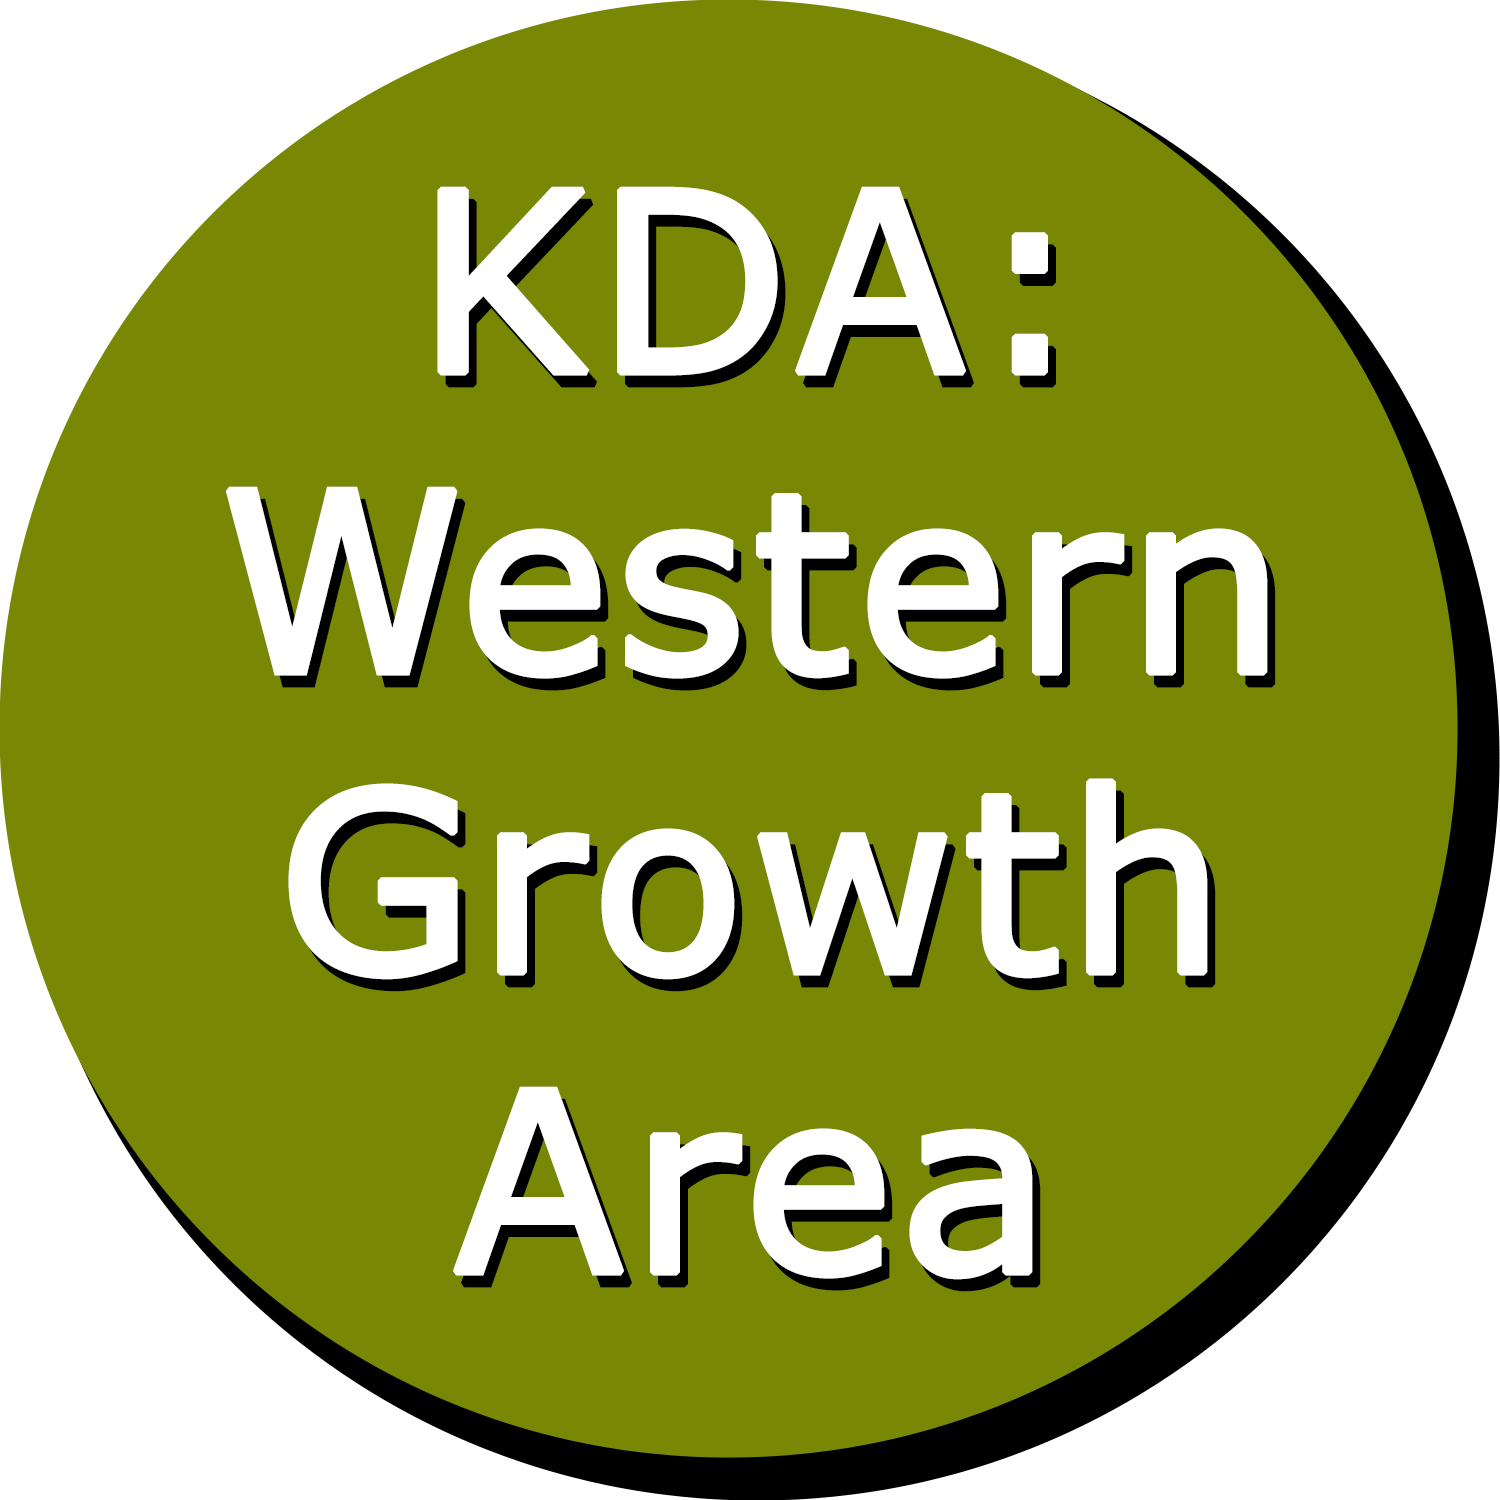 KDA: Western Growth Area